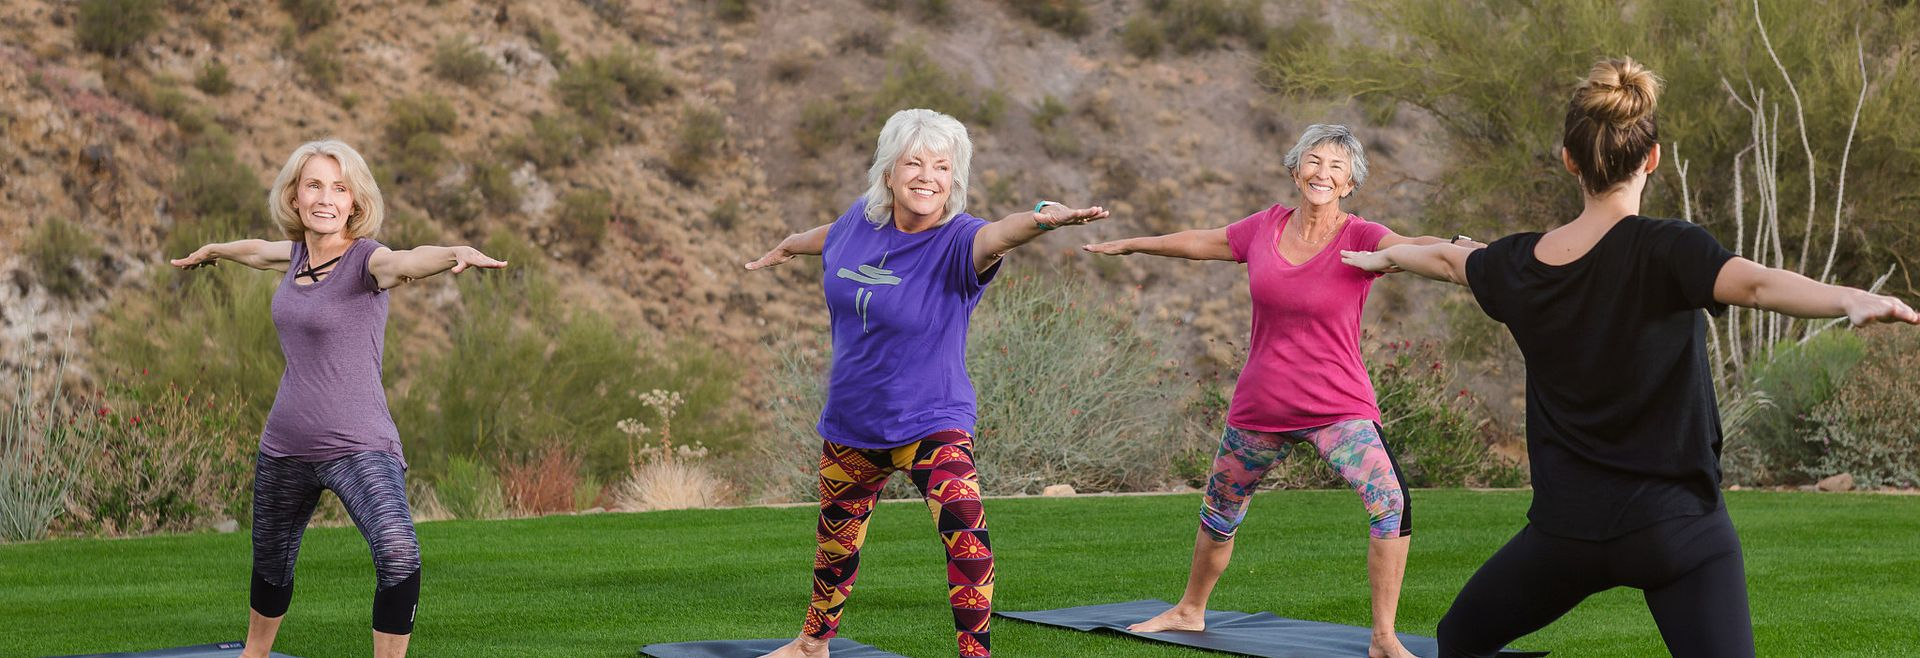 Trilogy members doing yoga in a group fitness class at Trilogy Wickenburg Ranch in Wickenburg, AZ